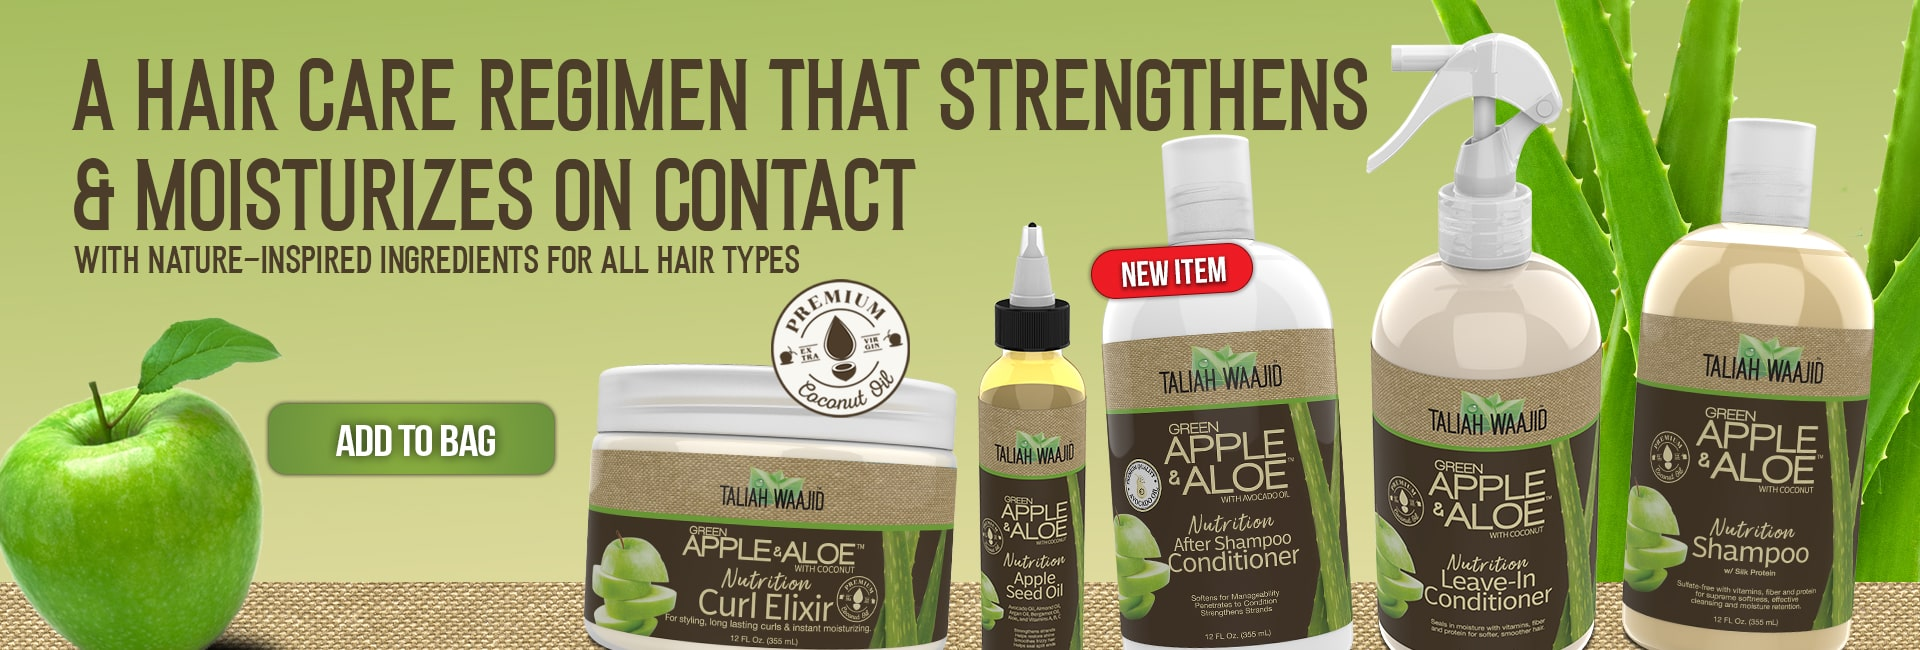 Taliah Waajid Brand Green Apple & Aloe Regimen for Natural Hair Care